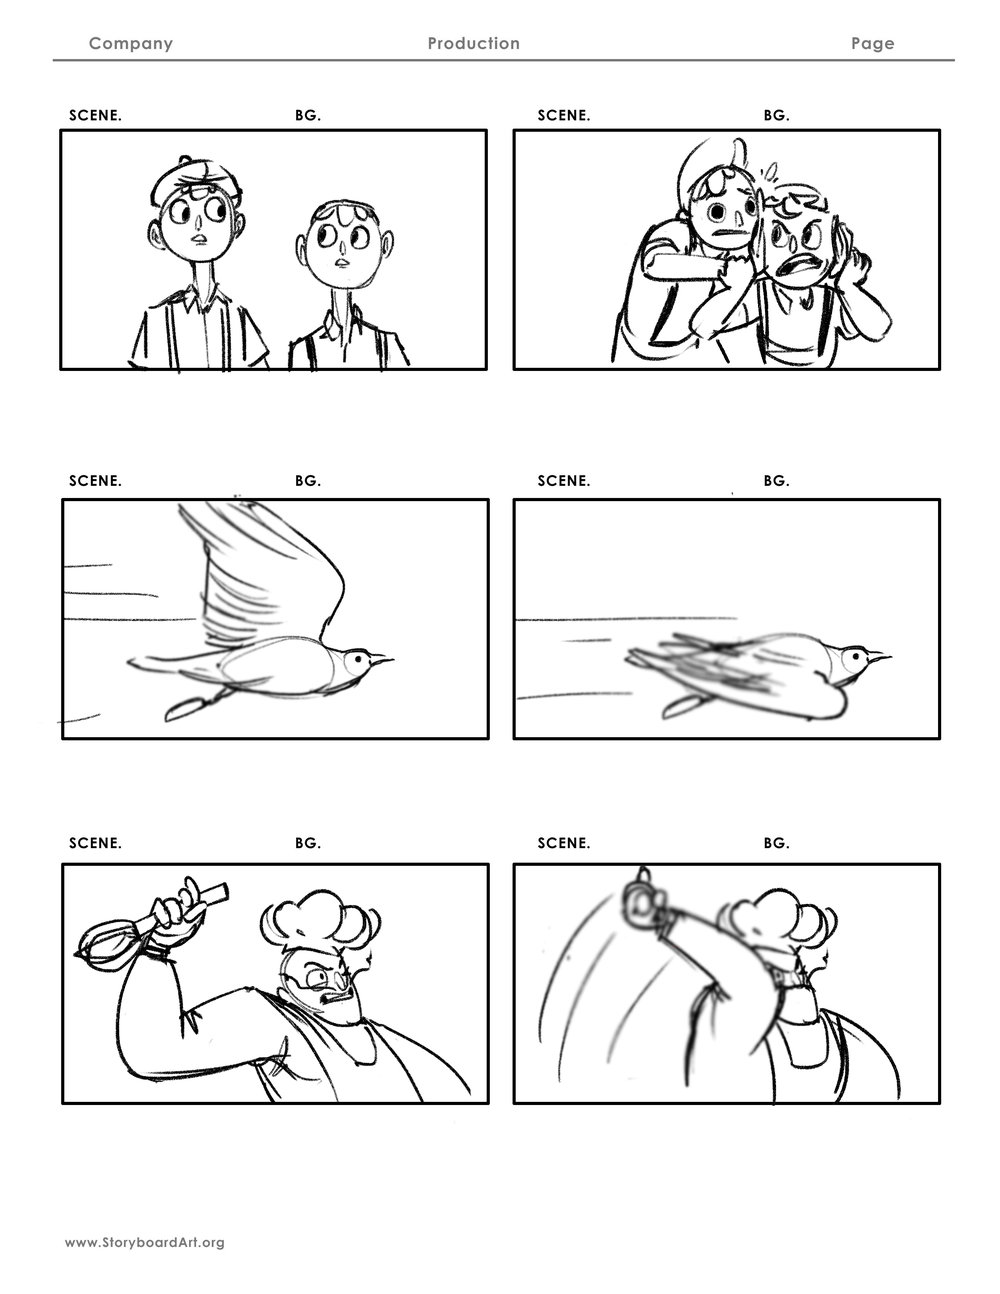 james storyboards page 10.jpg